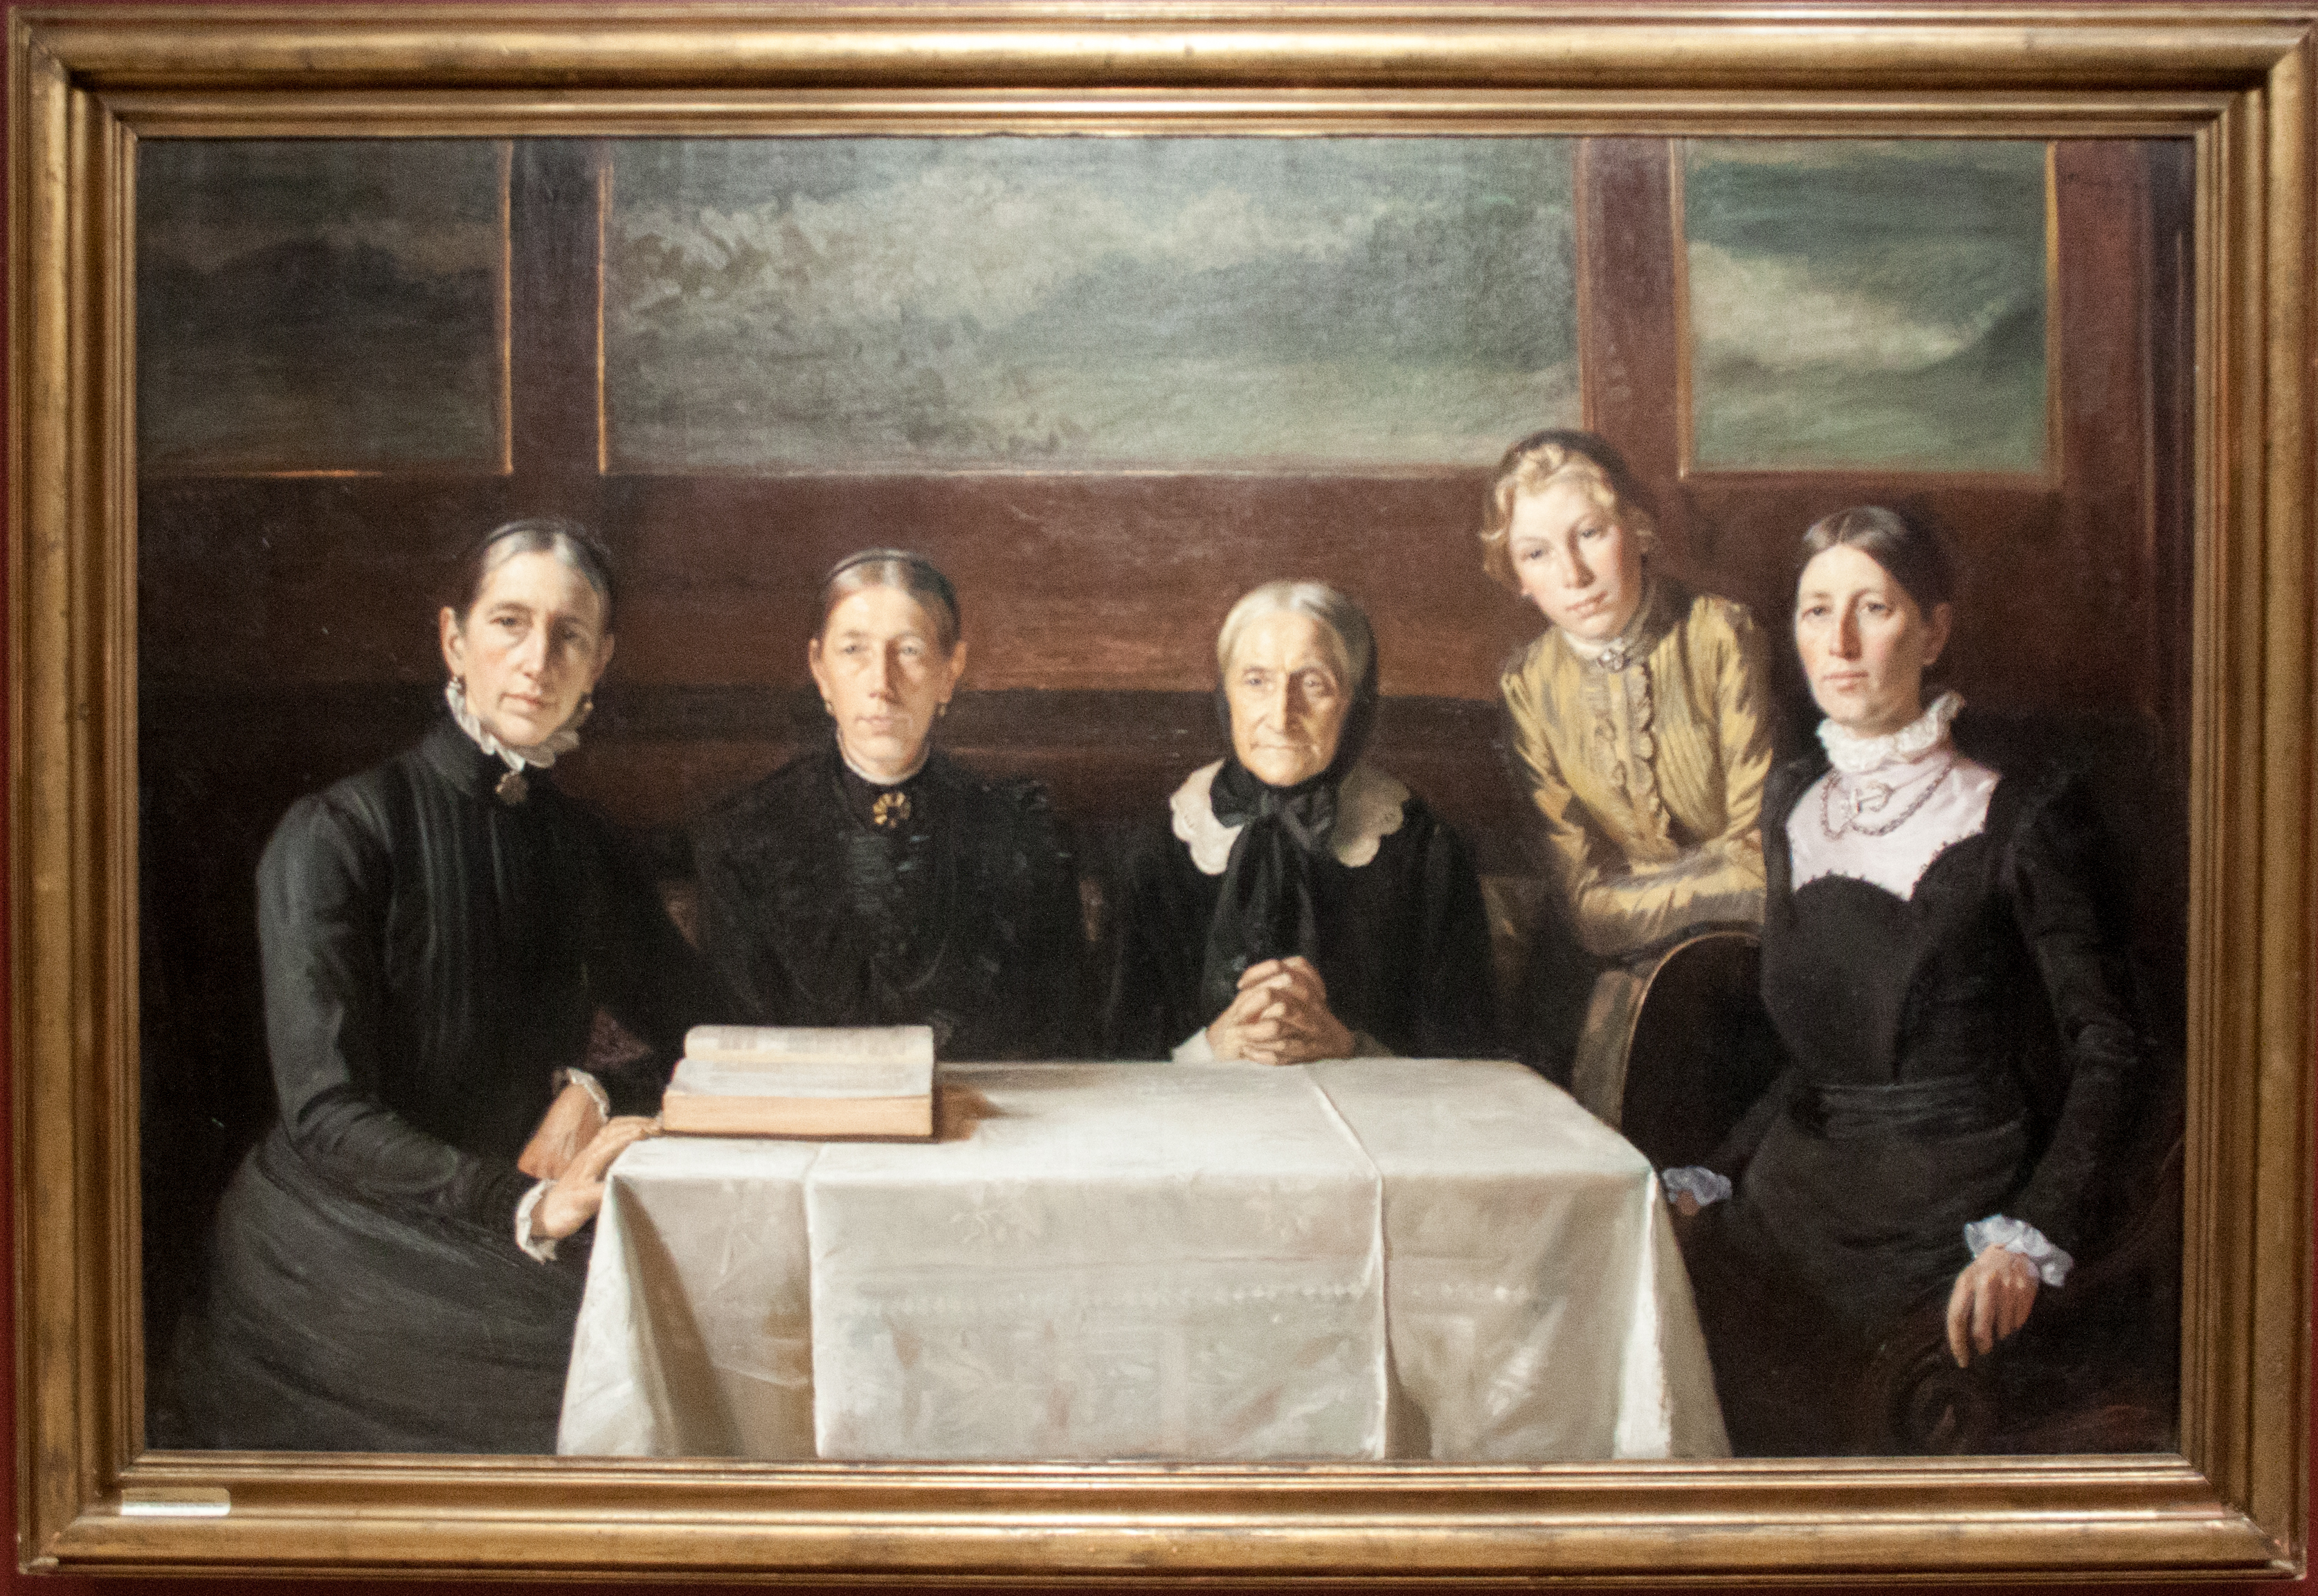 filechristmas day 1900 by michael ancher with framejpg - Michael Frame